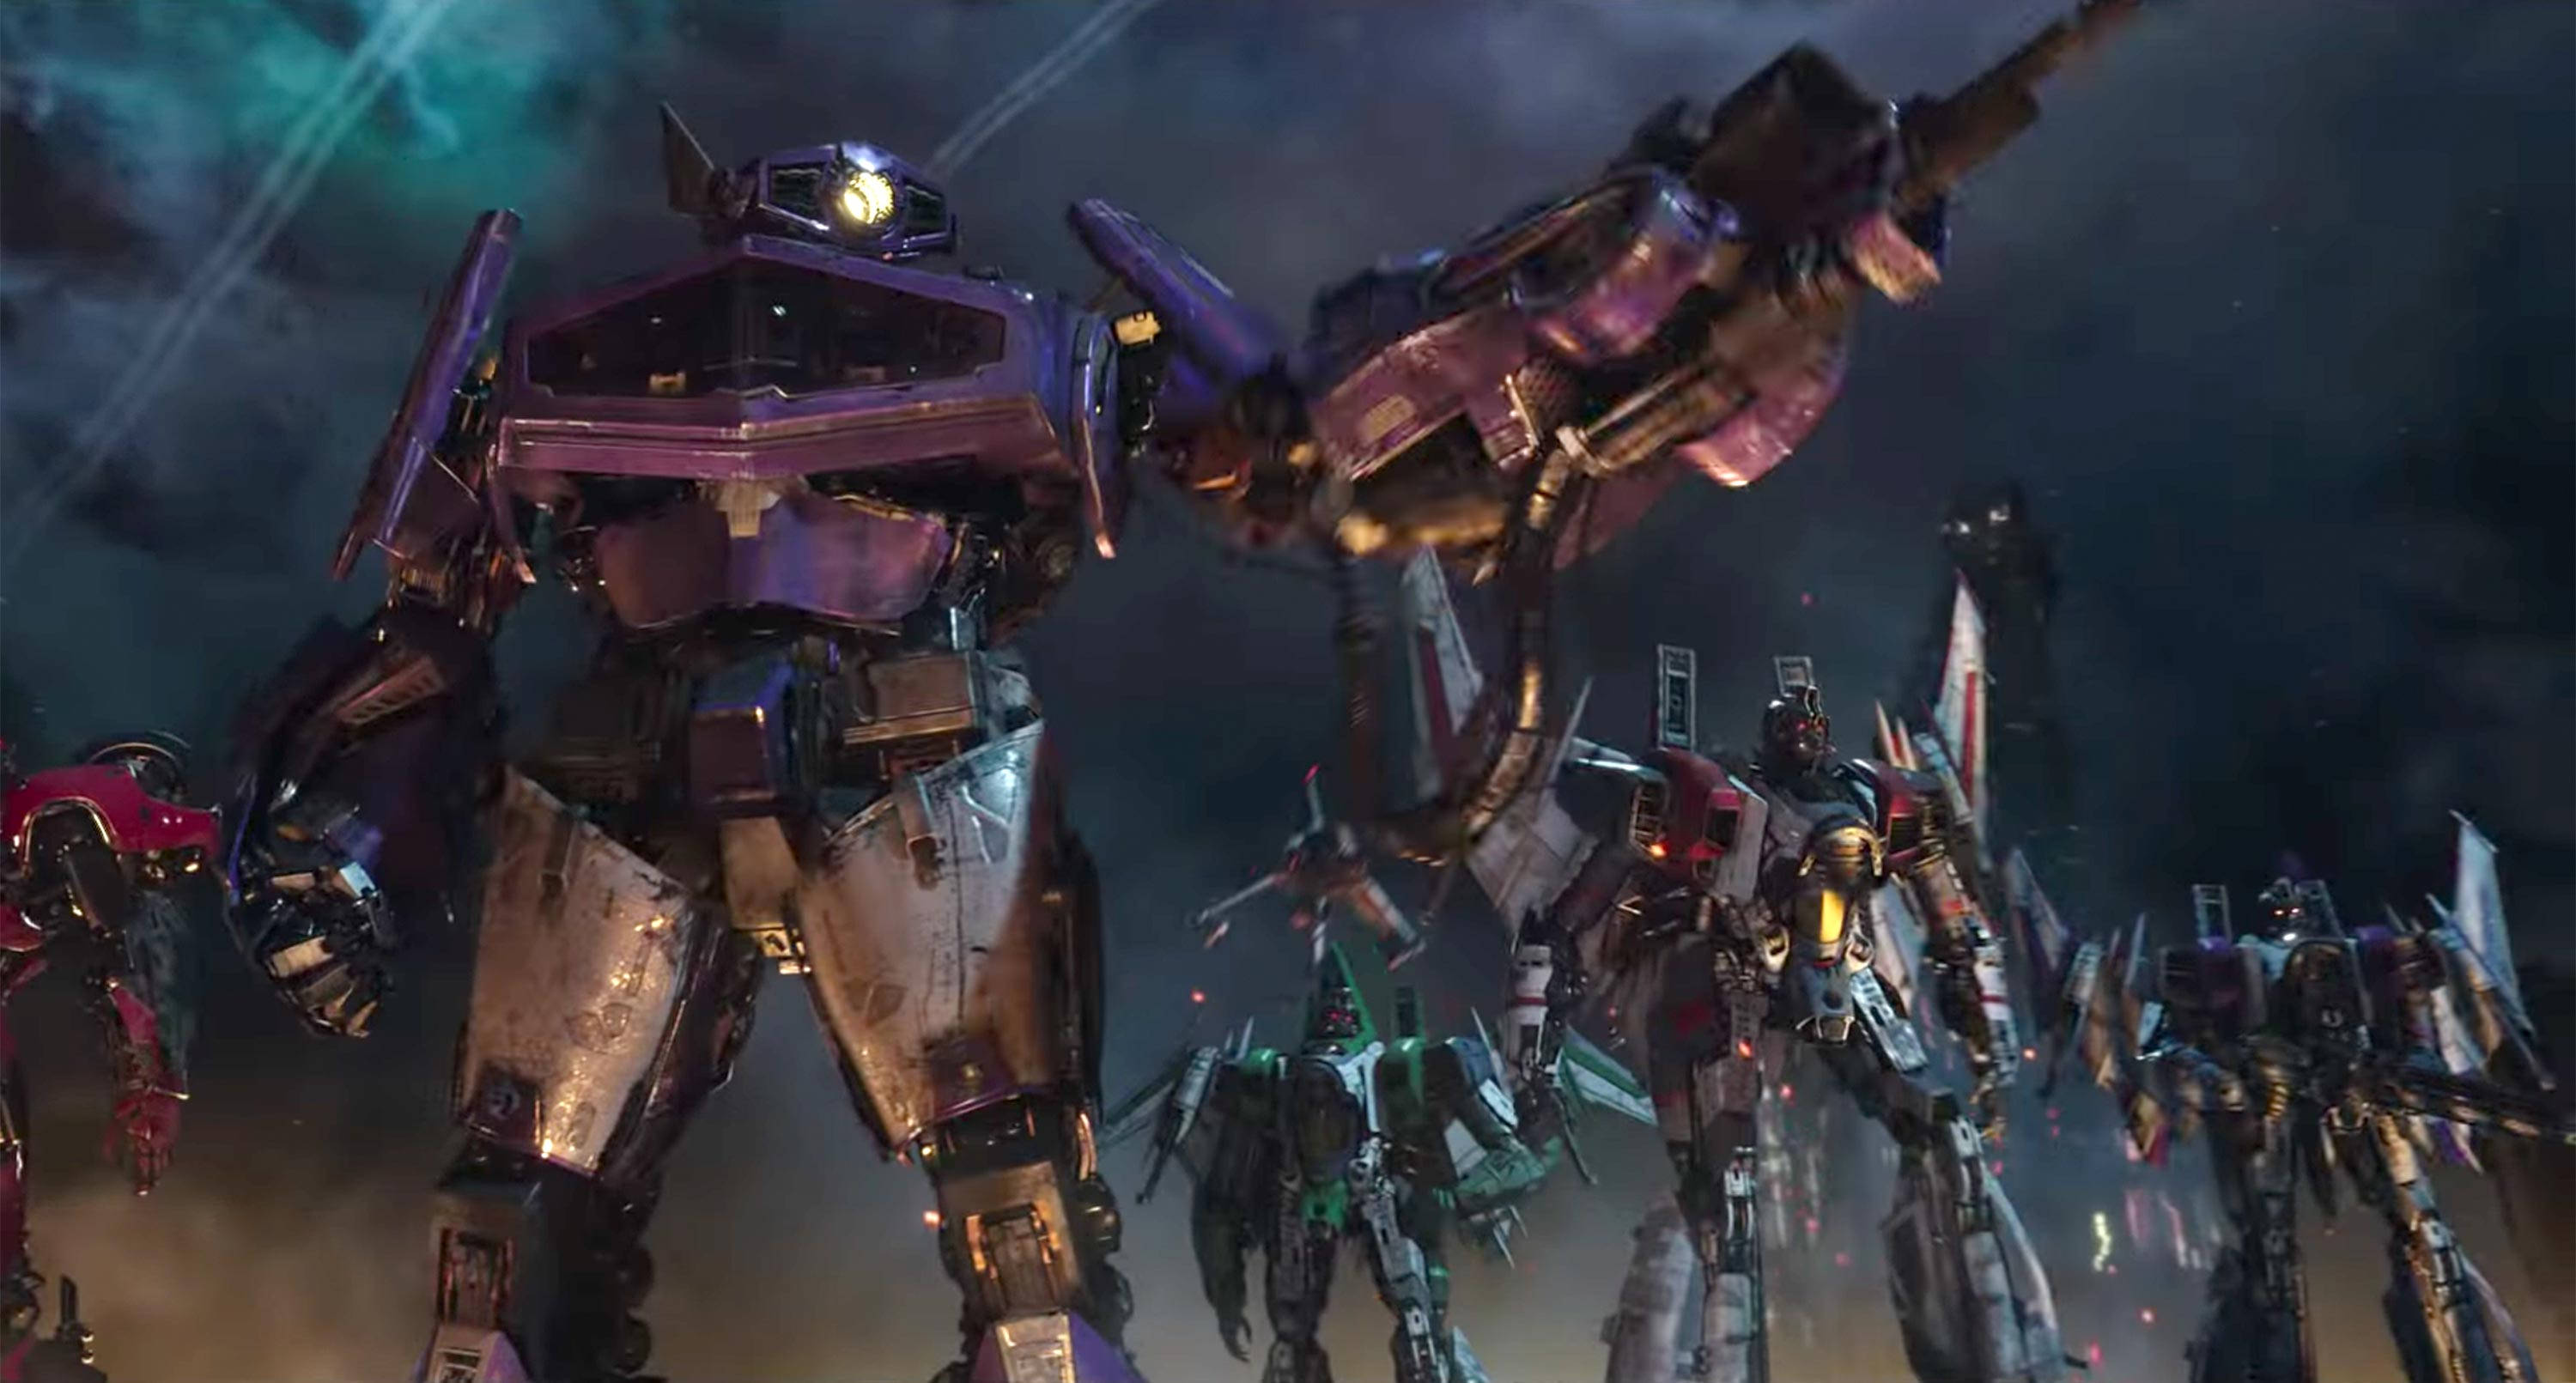 Transformers News: Hasbro Confirms Currently Working with Paramount on New Transformers Films